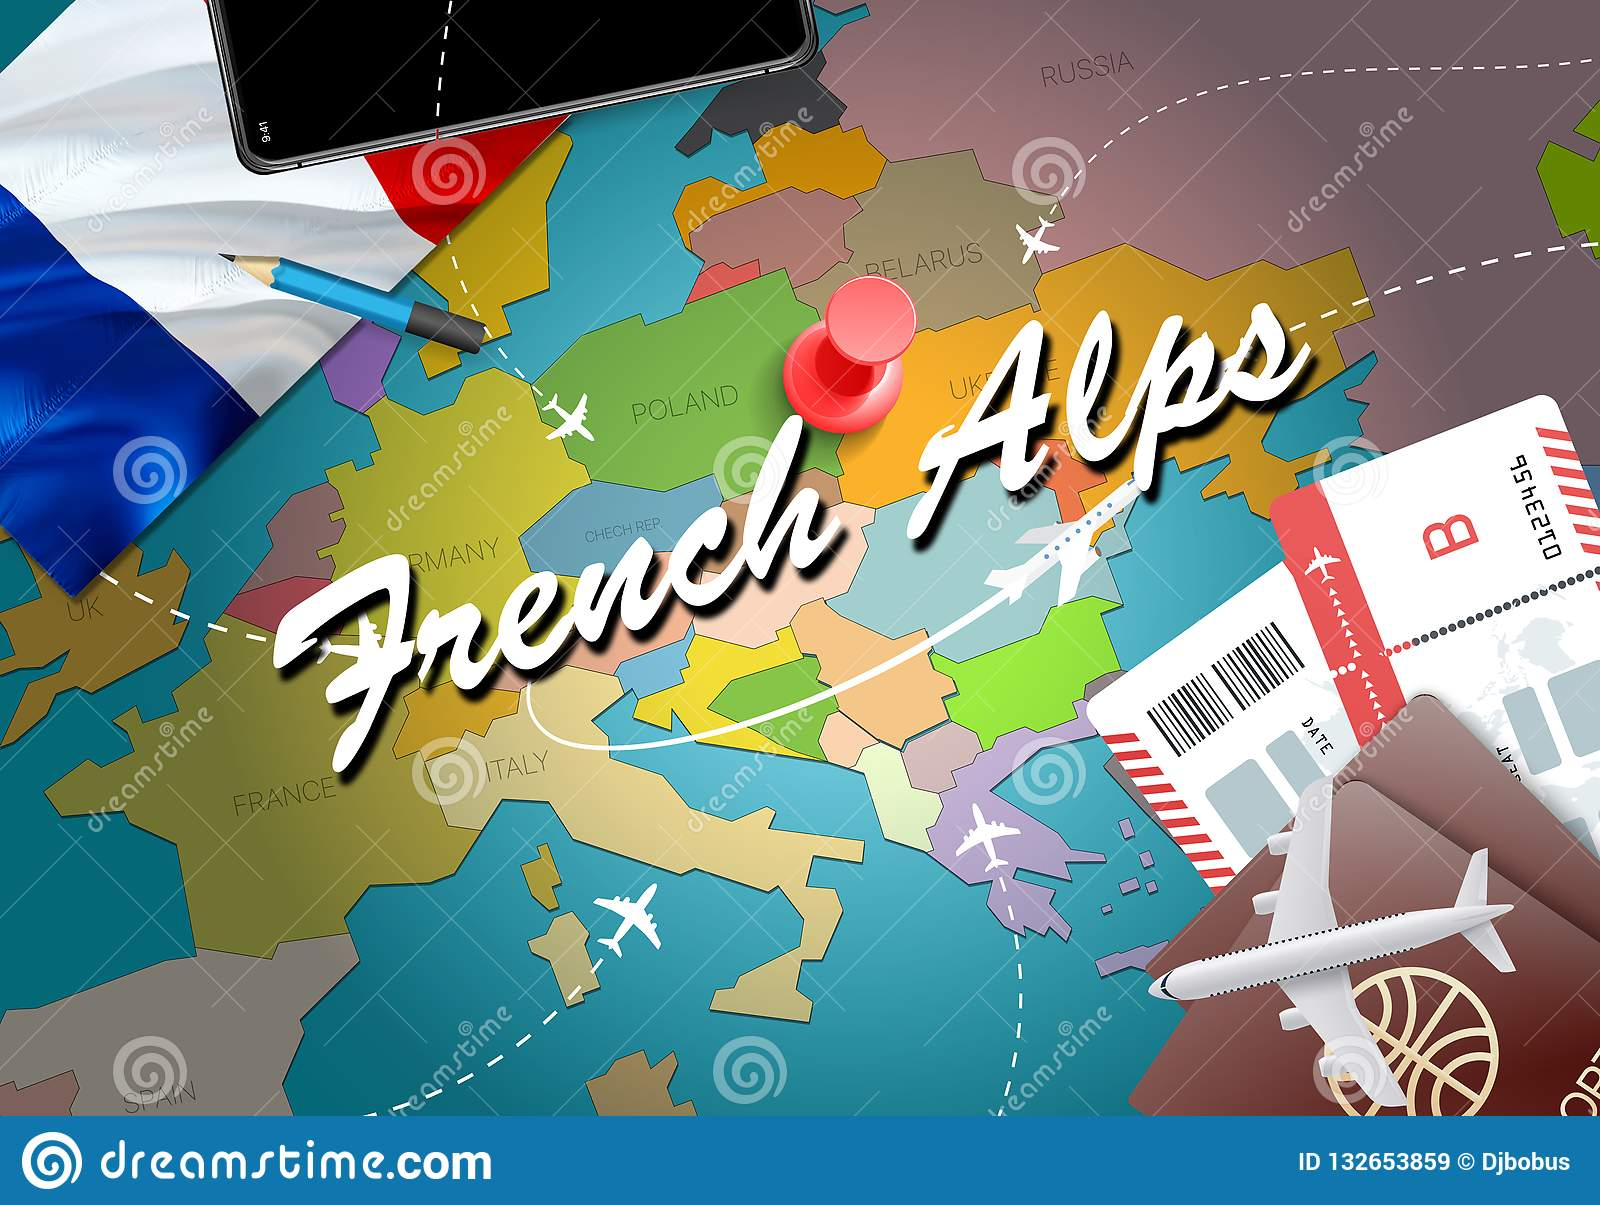 Map Of The Alps In France.French Alps City Travel And Tourism Destination Concept France